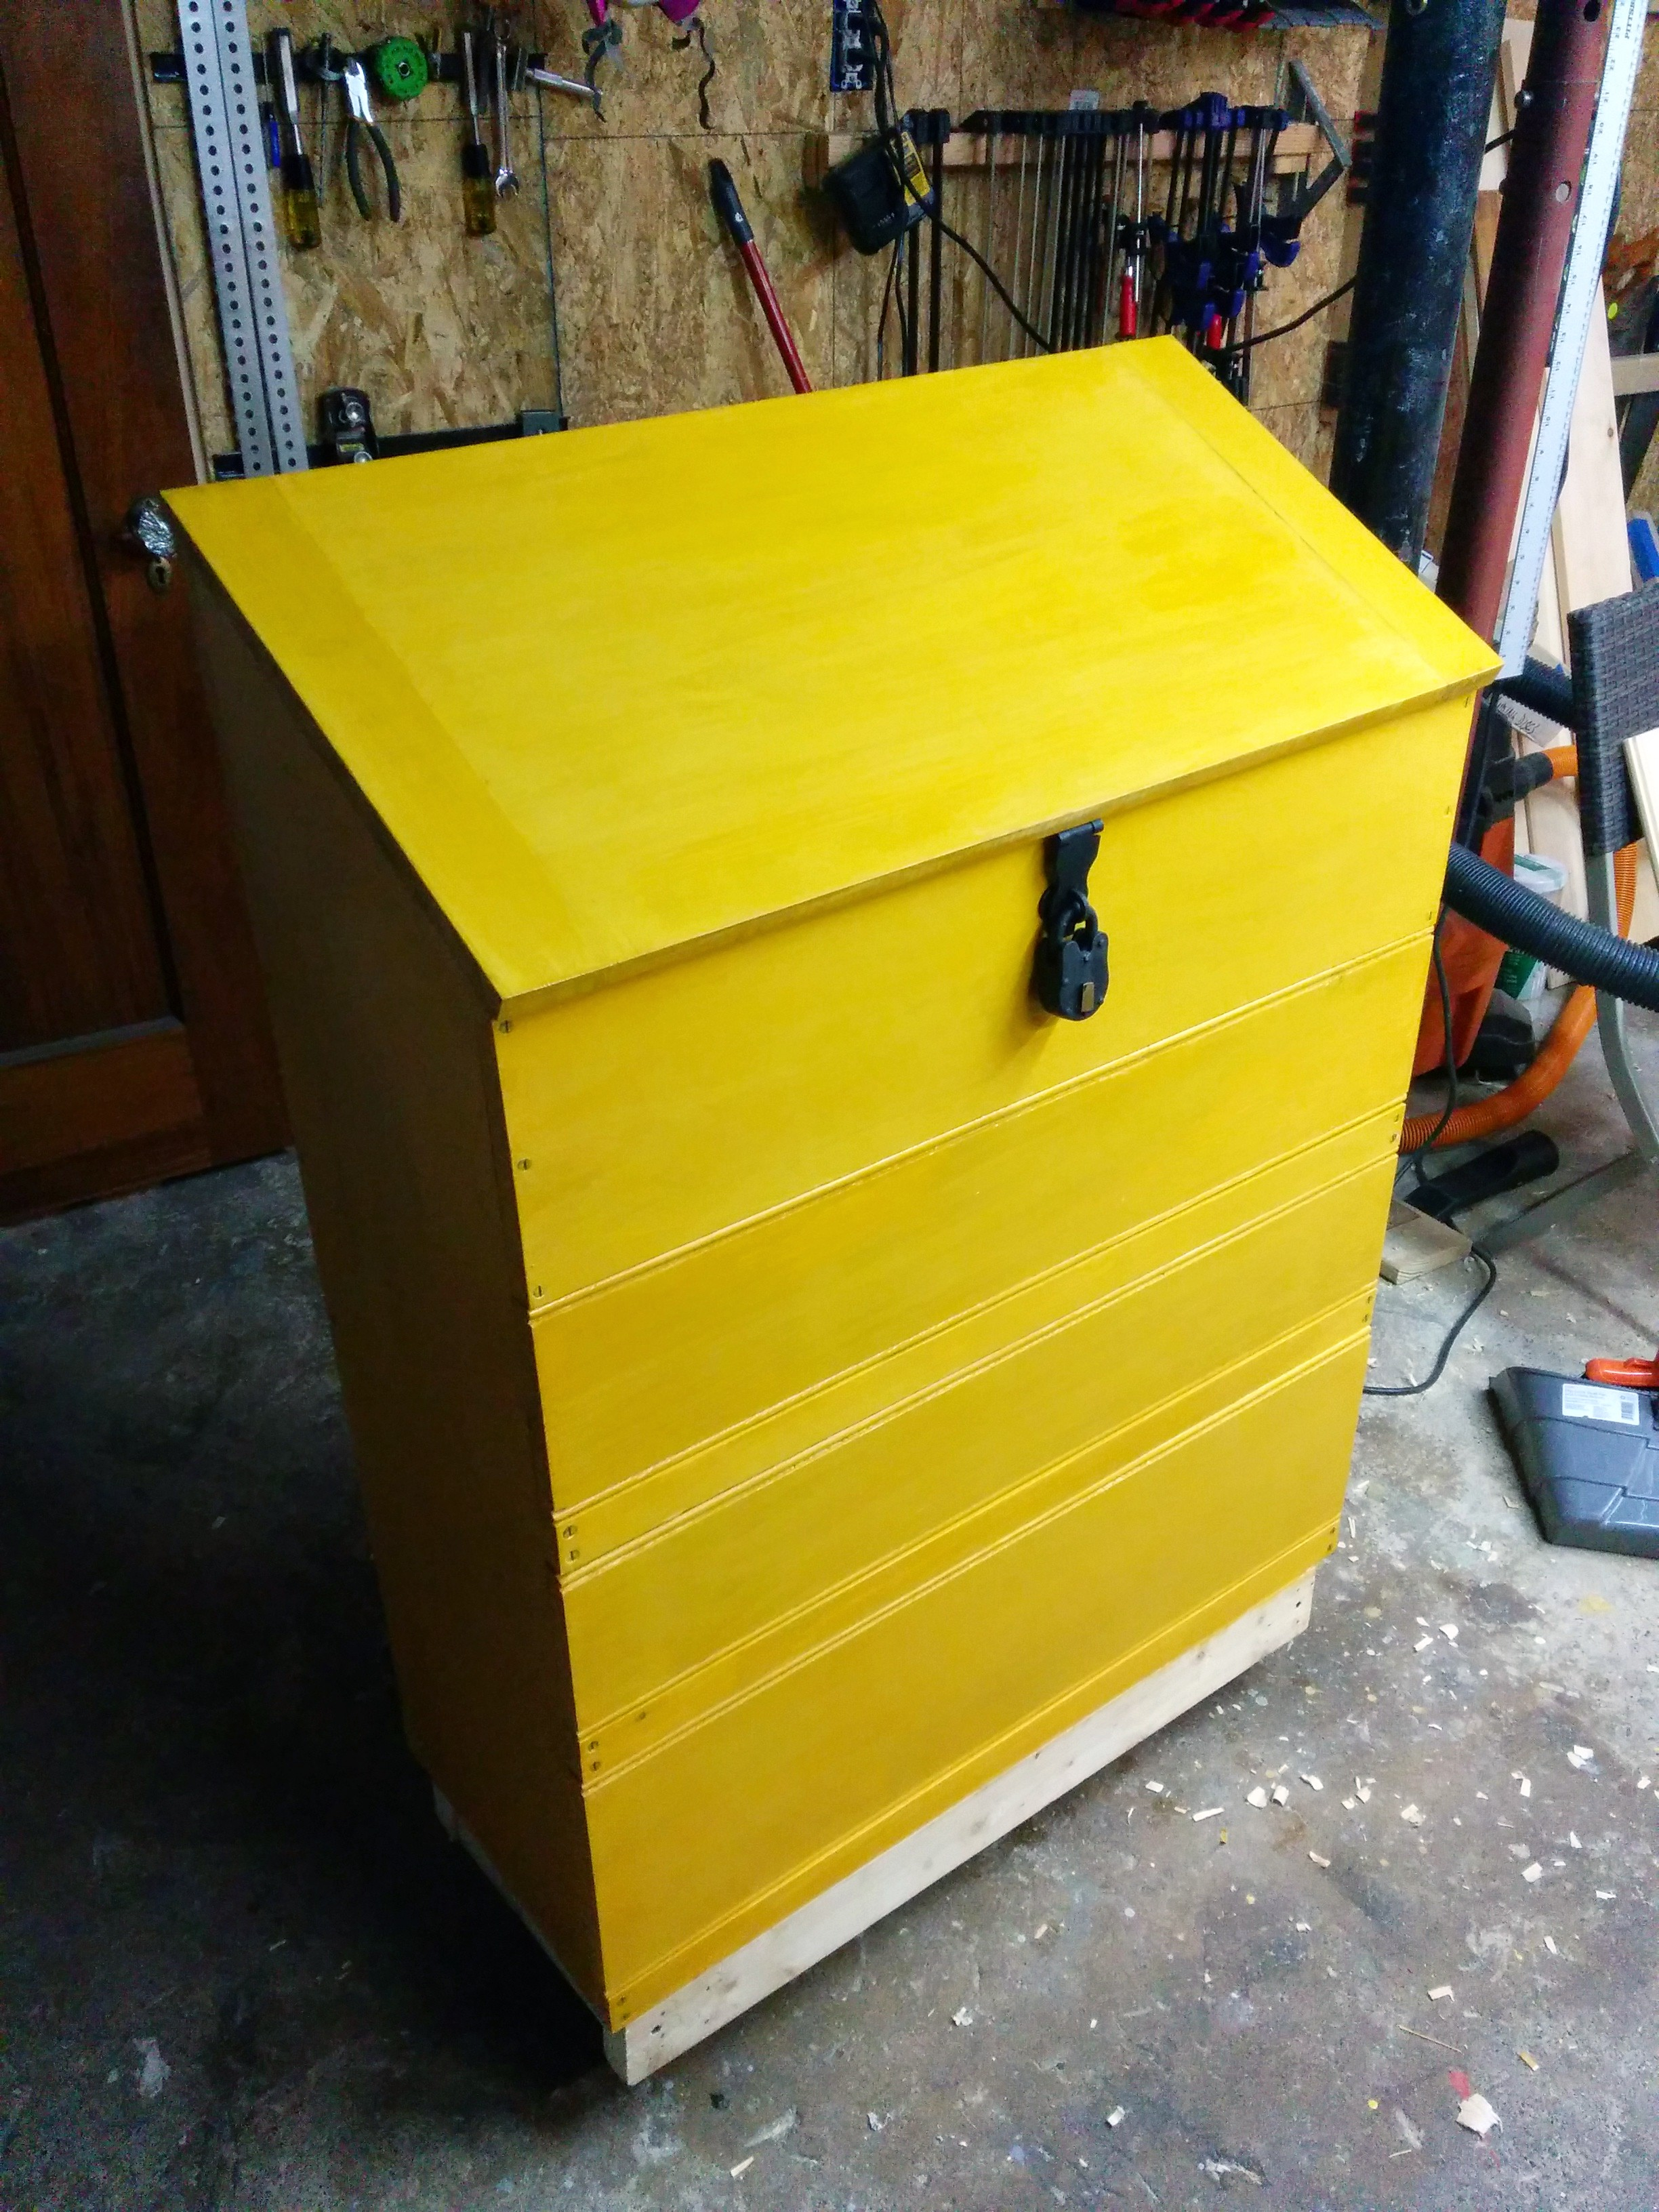 The tool chest I built.